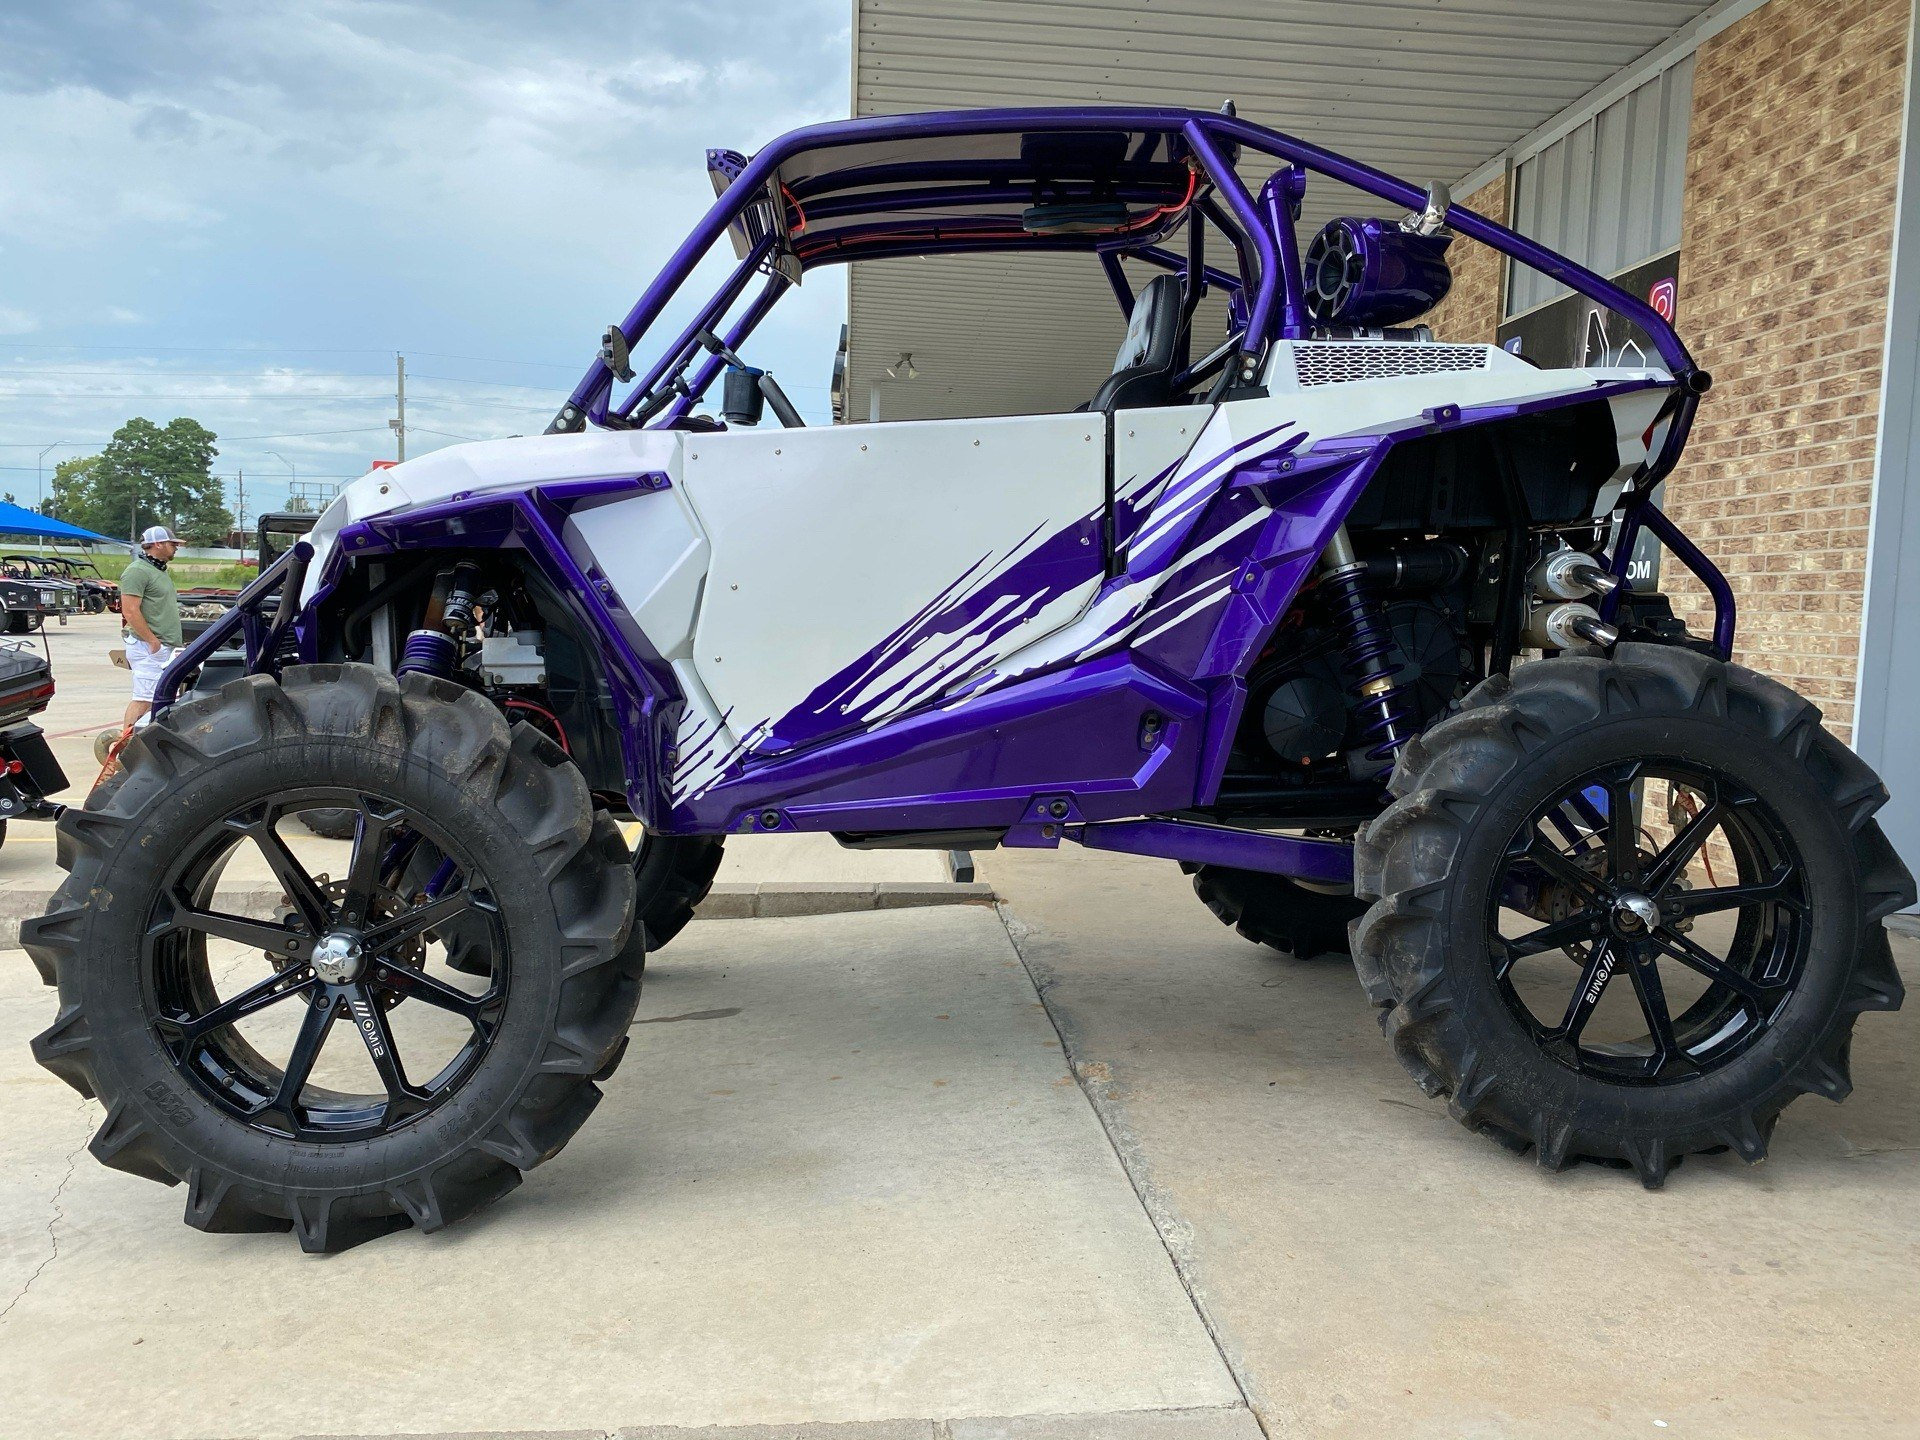 2014 Polaris RZR® XP 1000 EPS in Marshall, Texas - Photo 2